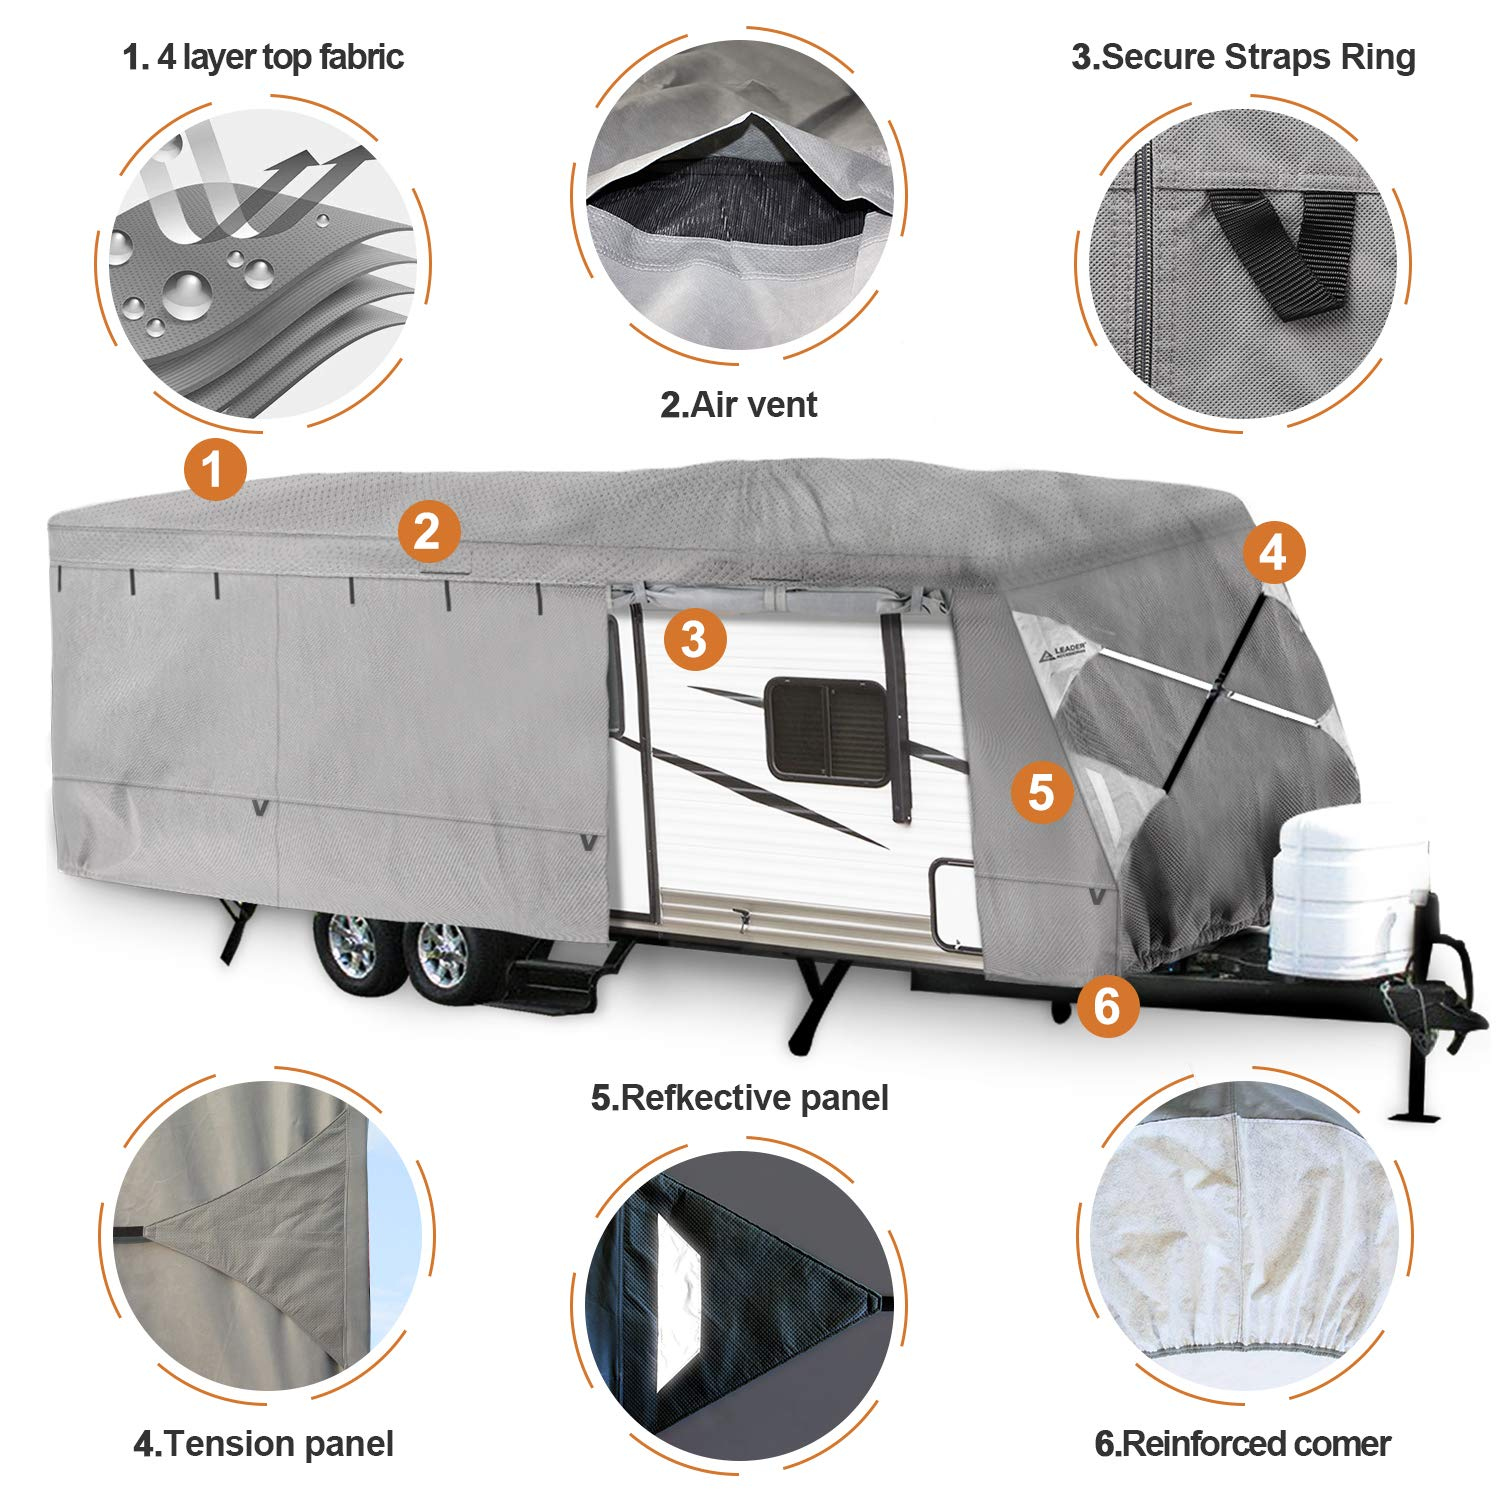 Leader Accessories Travel Trailer RV cover (4 Layer Top/Grey, Fits 27'-30') by Leader Accessories (Image #4)